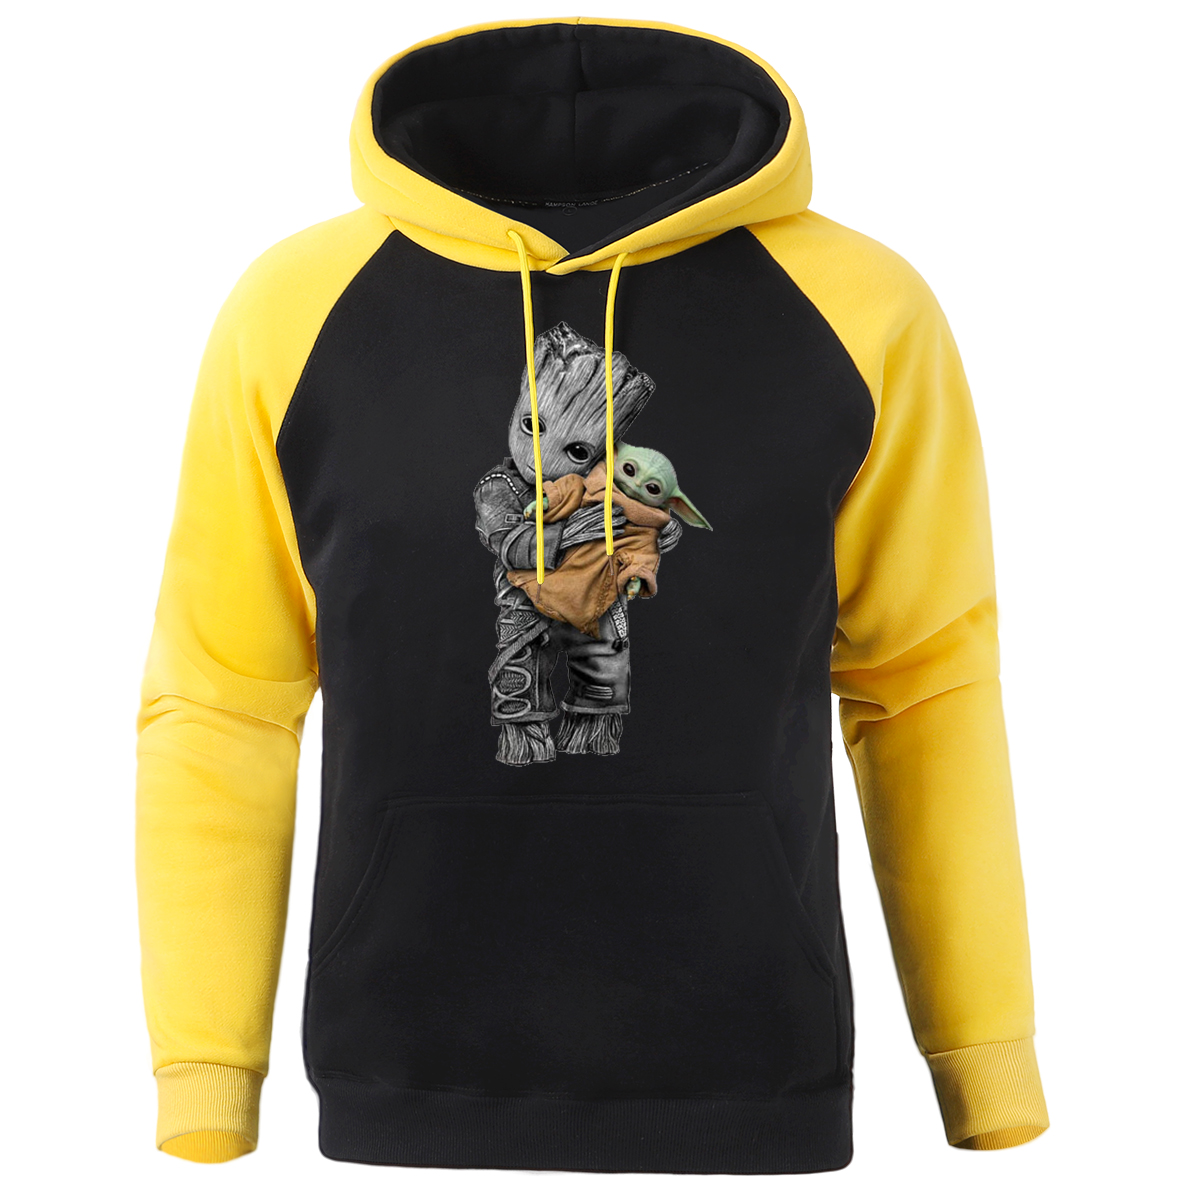 2020 New Male Hoodies Baby Yoda And Groot Men's Sports Sweatshirts Spring Cartoon Graphics Clothes Men Funny Streetwear Pullover